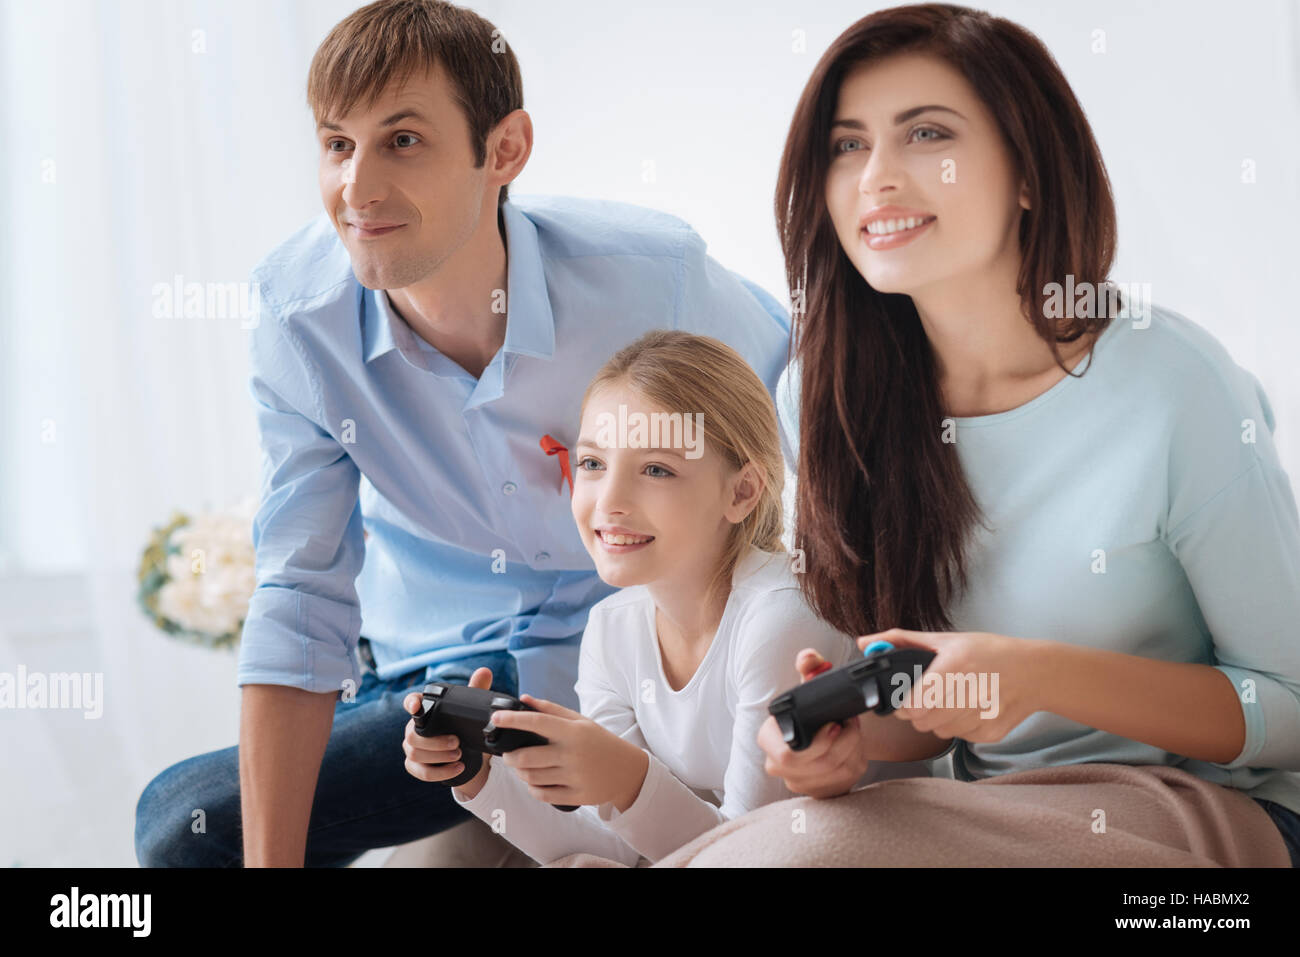 Nice close knit family playing video games - Stock Image